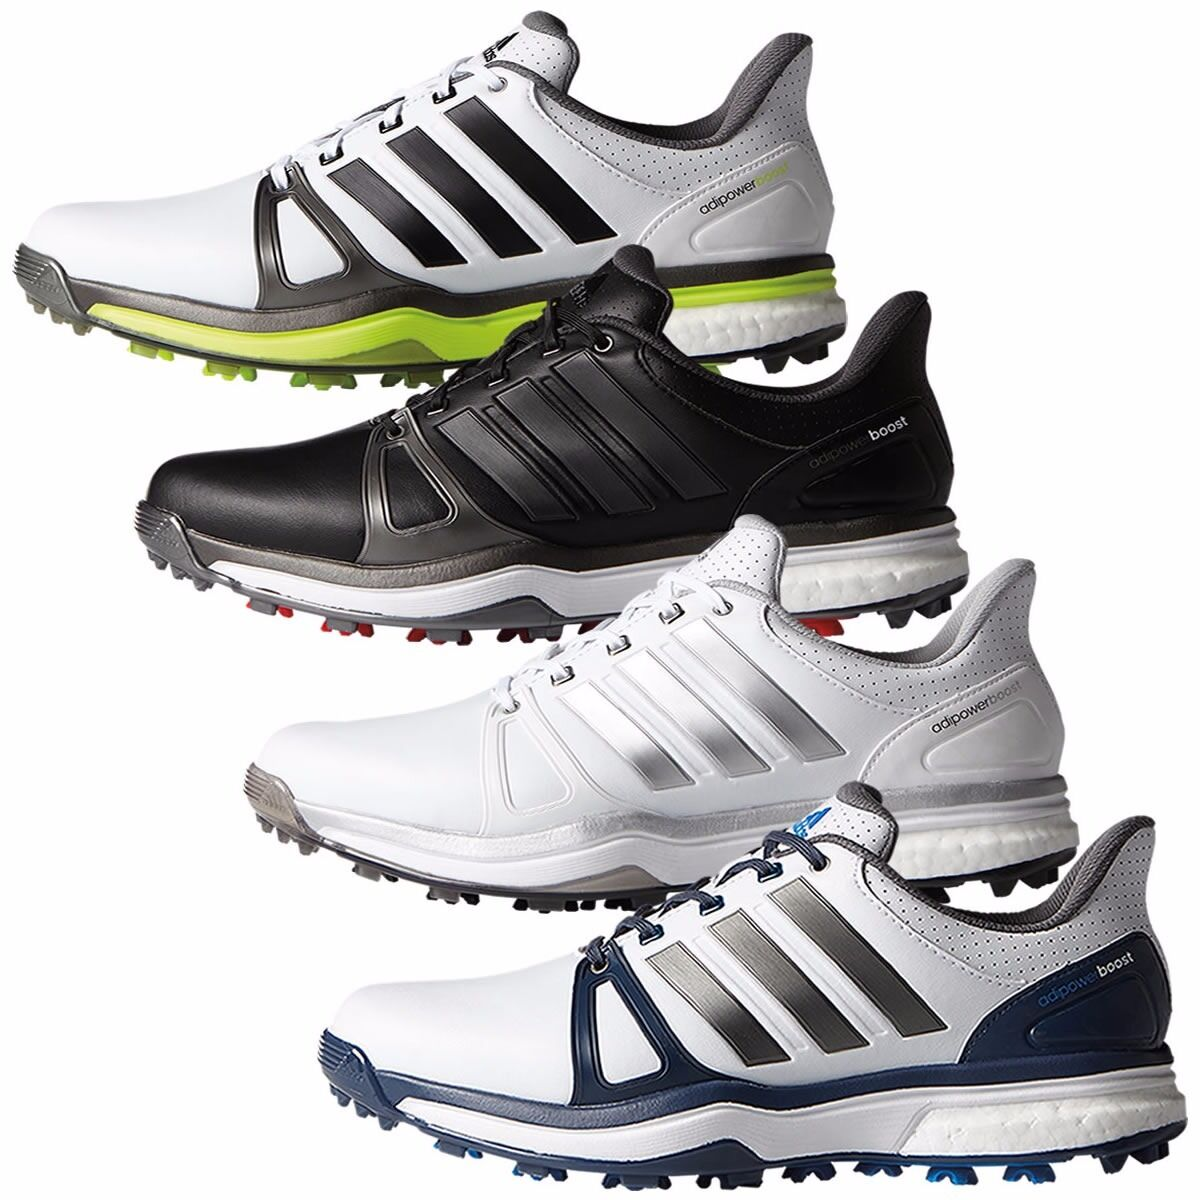 Adidas AdiPower Boost 2 Golf Shoes Mens New Med & Wide Sizes